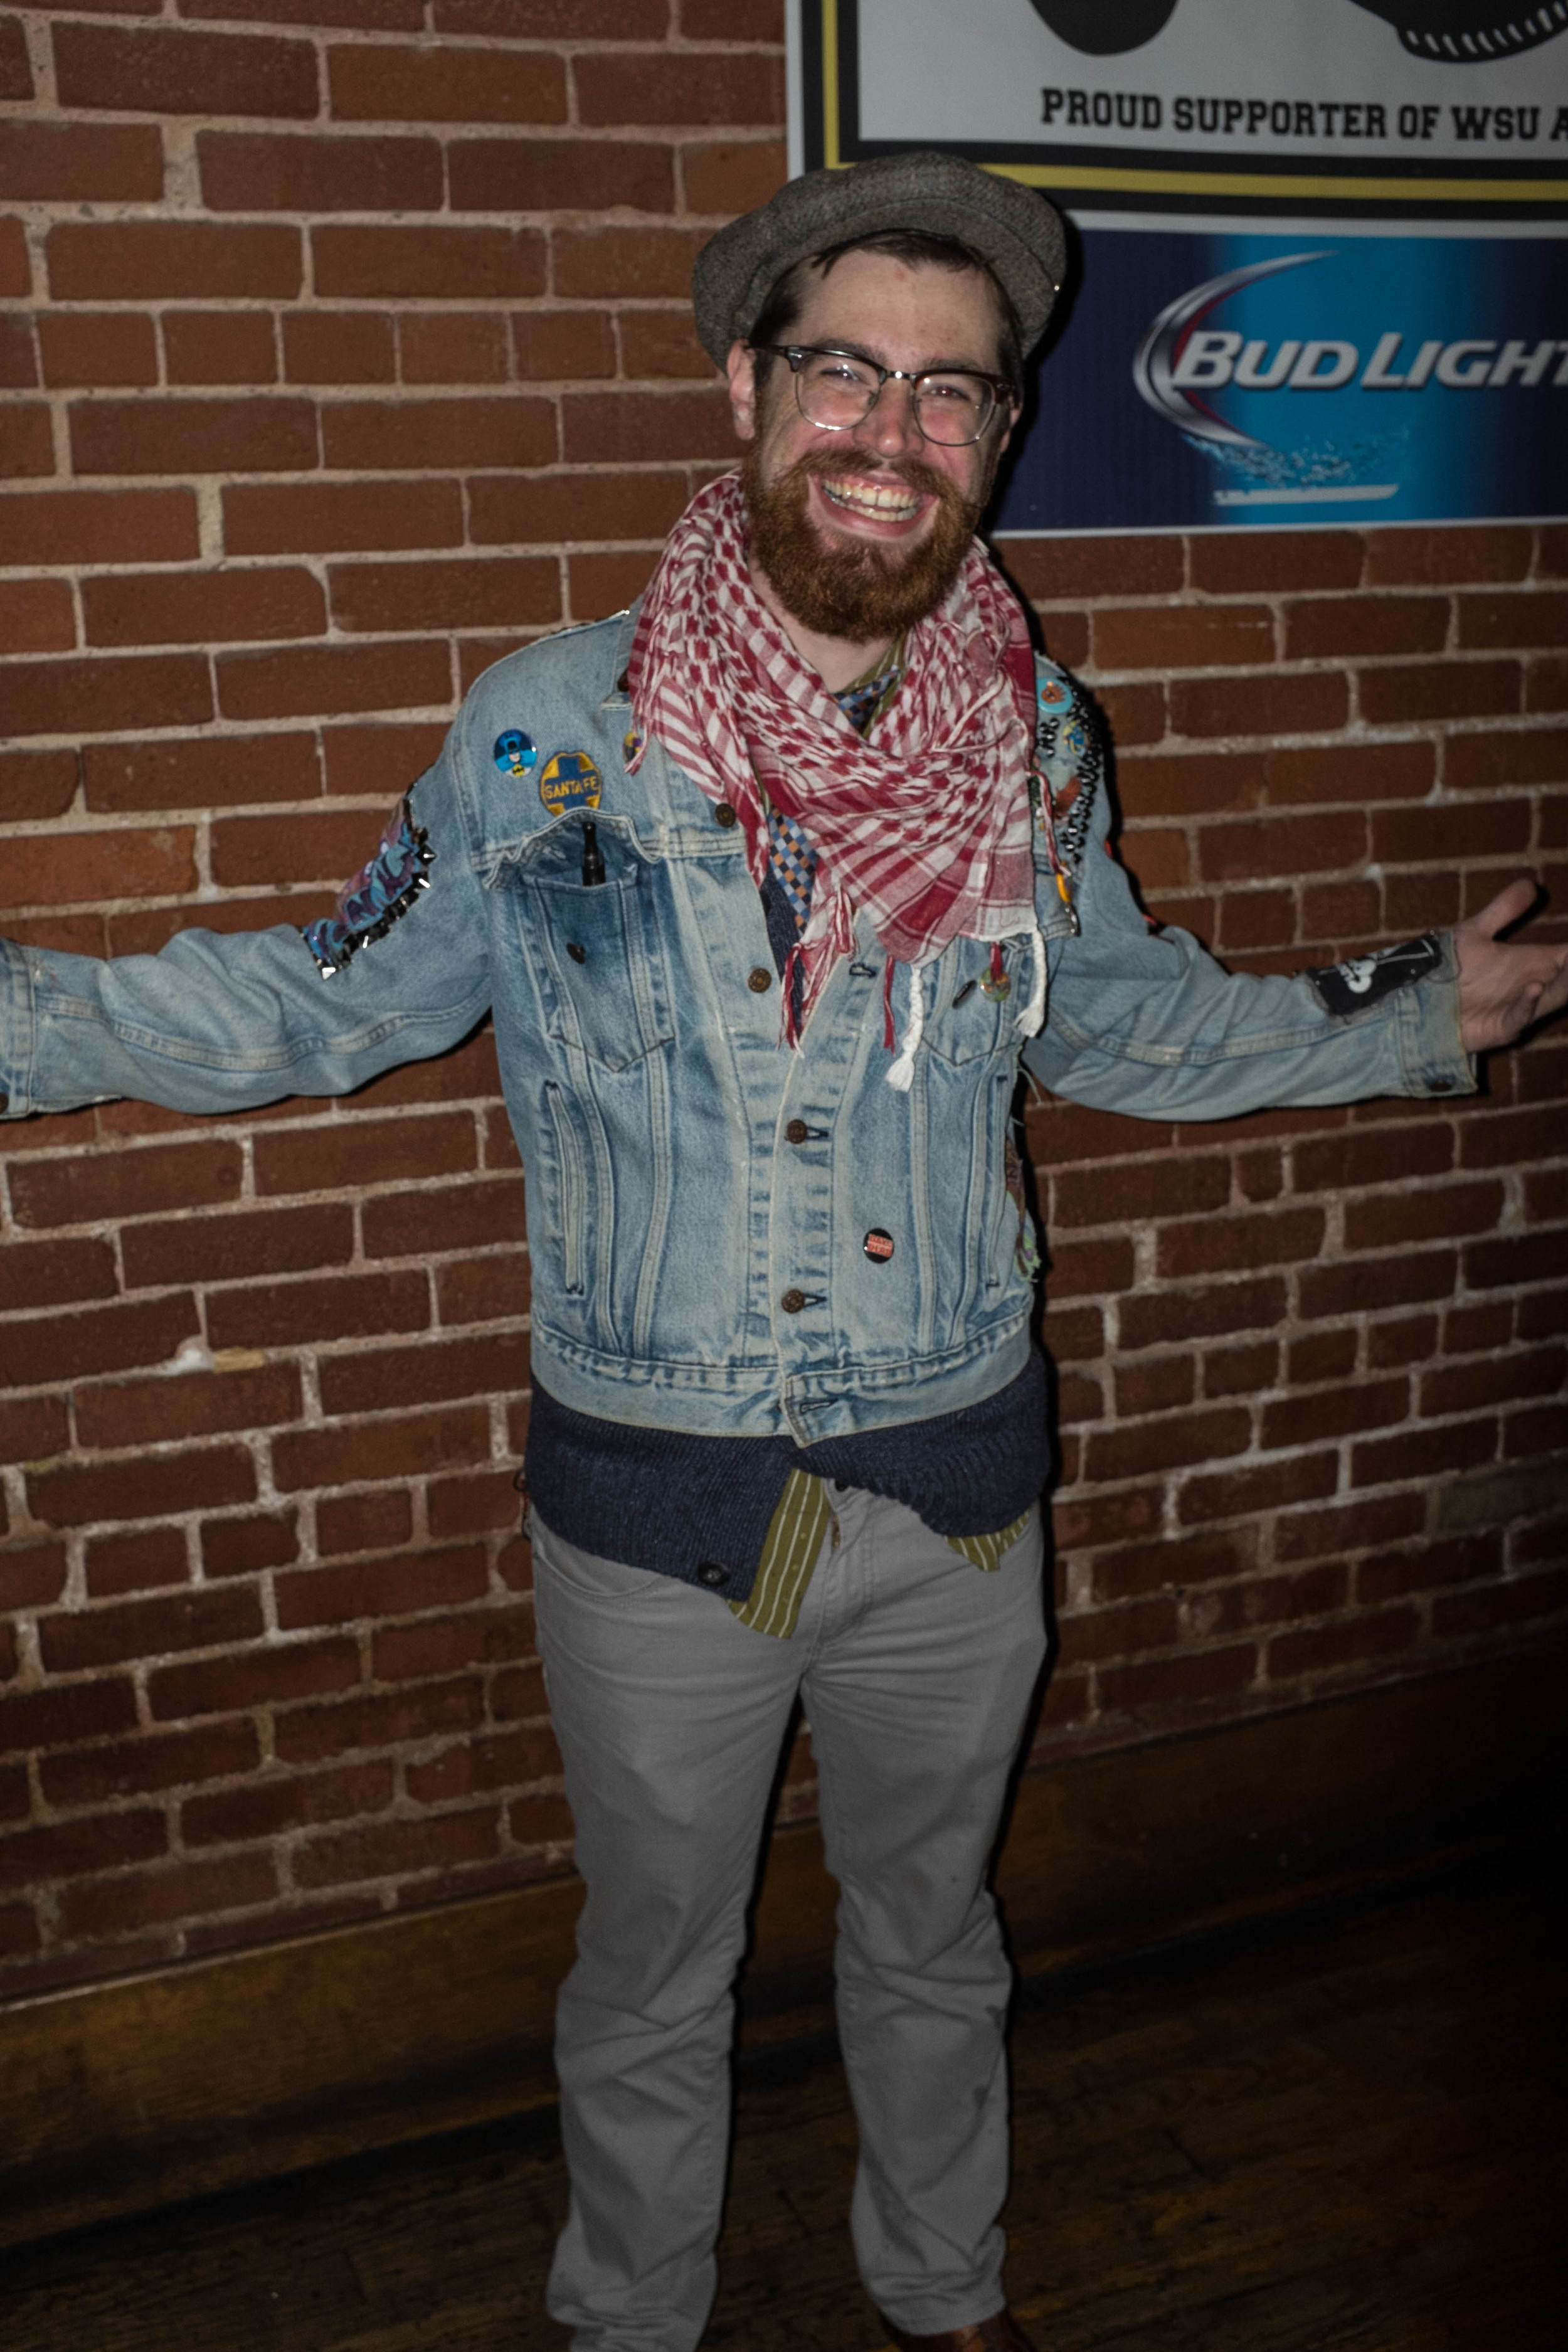 Come on the customized jean jacket?! Doesn't get any better than that!